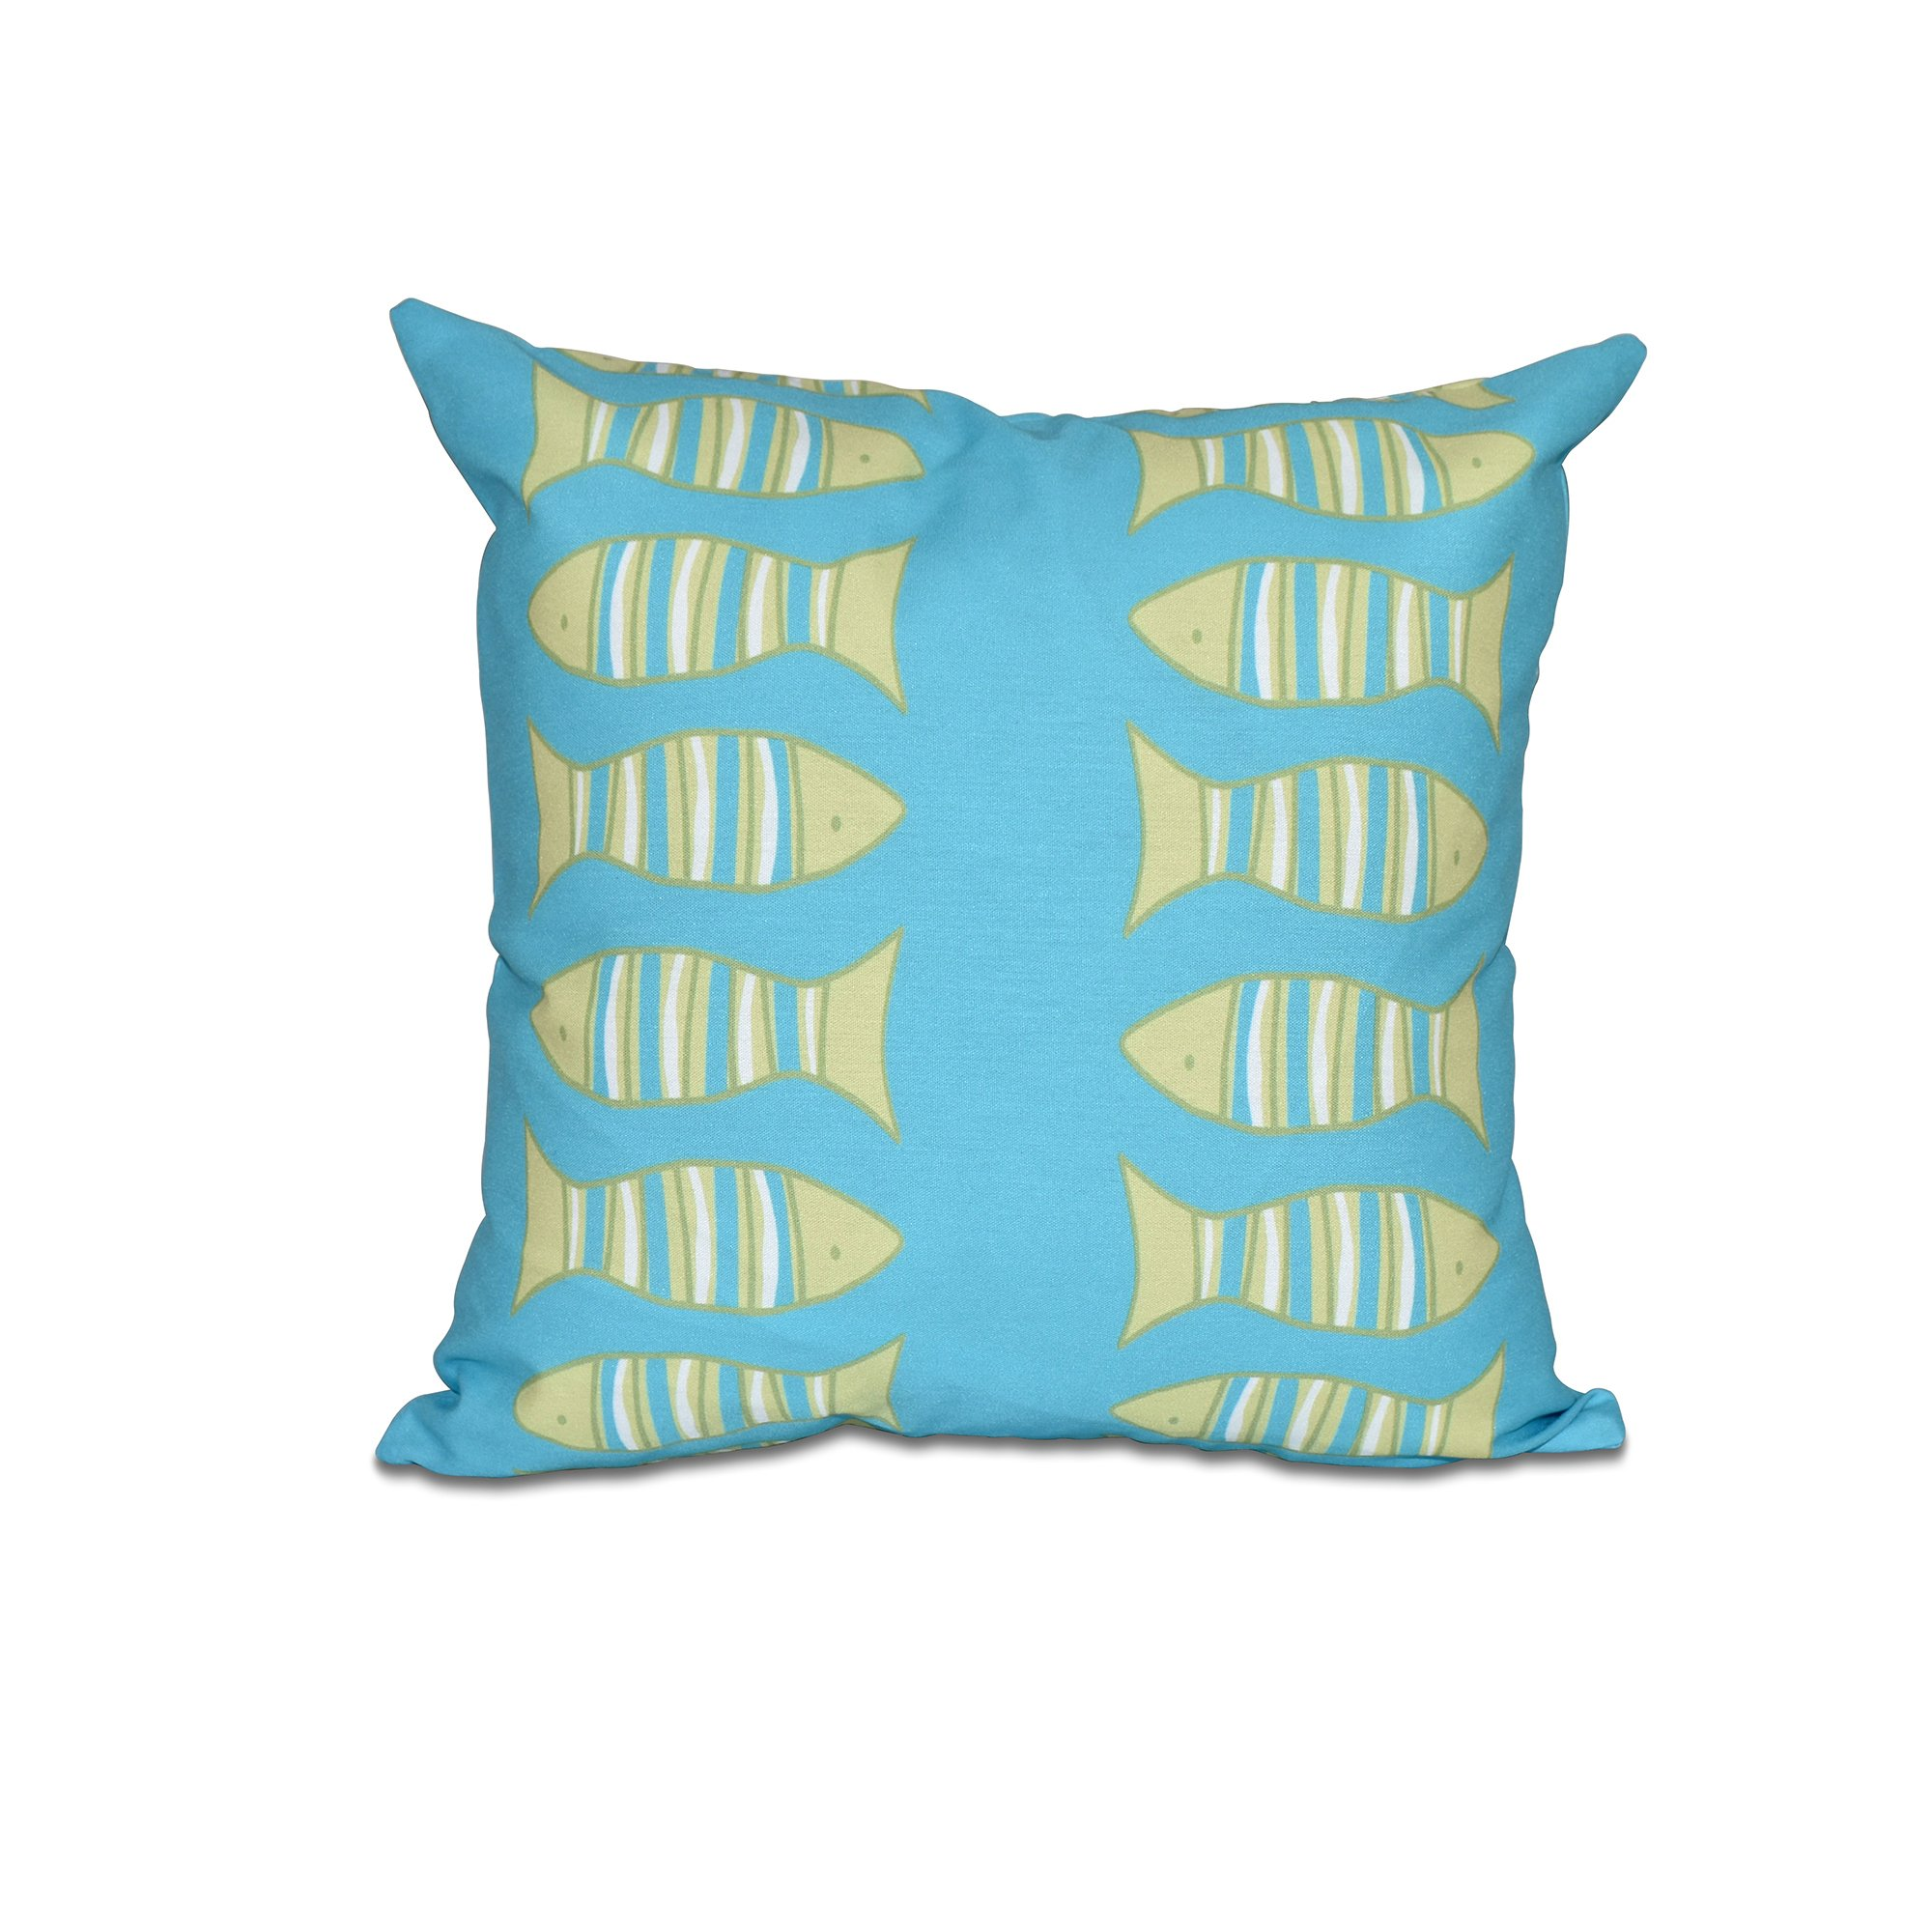 E by design 16 x 16'' Something's Fishy Animal Print Turquoise Pillow